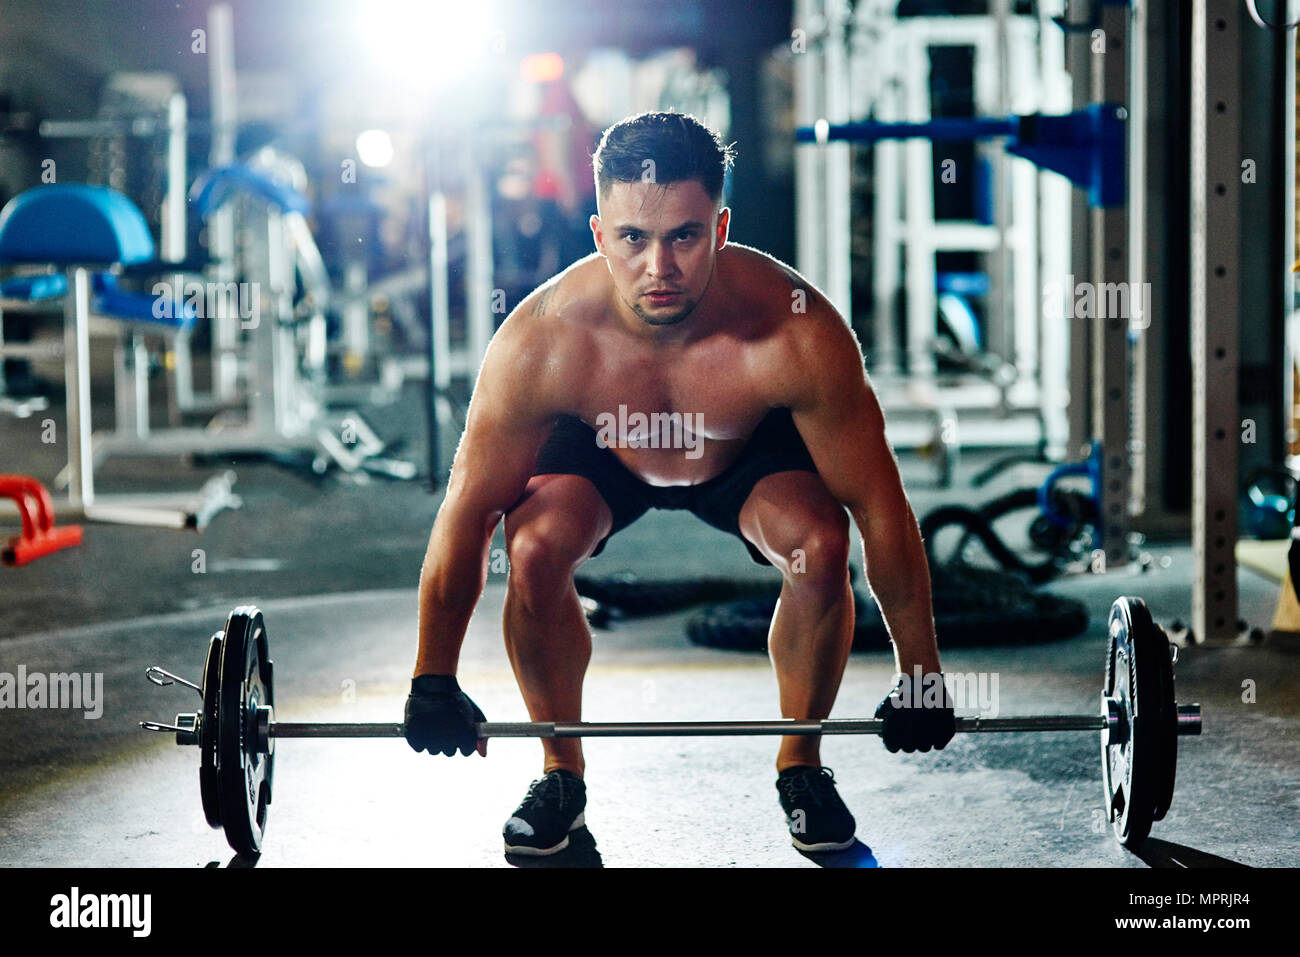 Man lifting barbell in gym - Stock Image